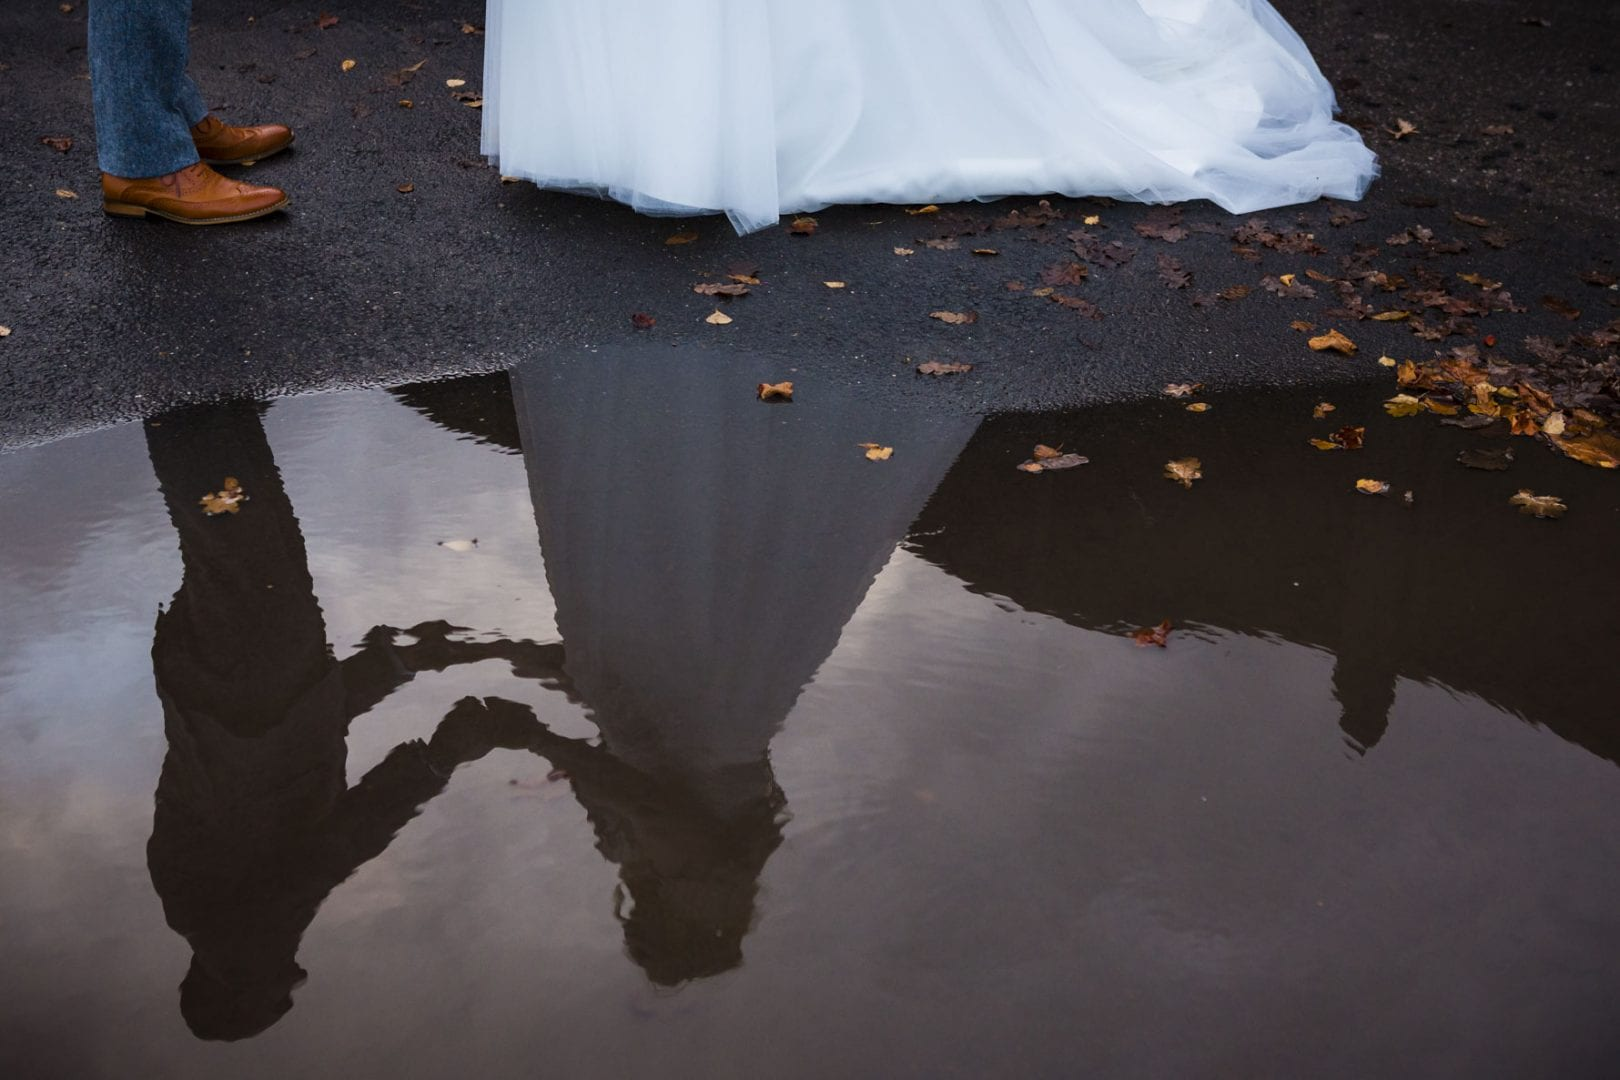 A reflection of a bride and grooming s puddle